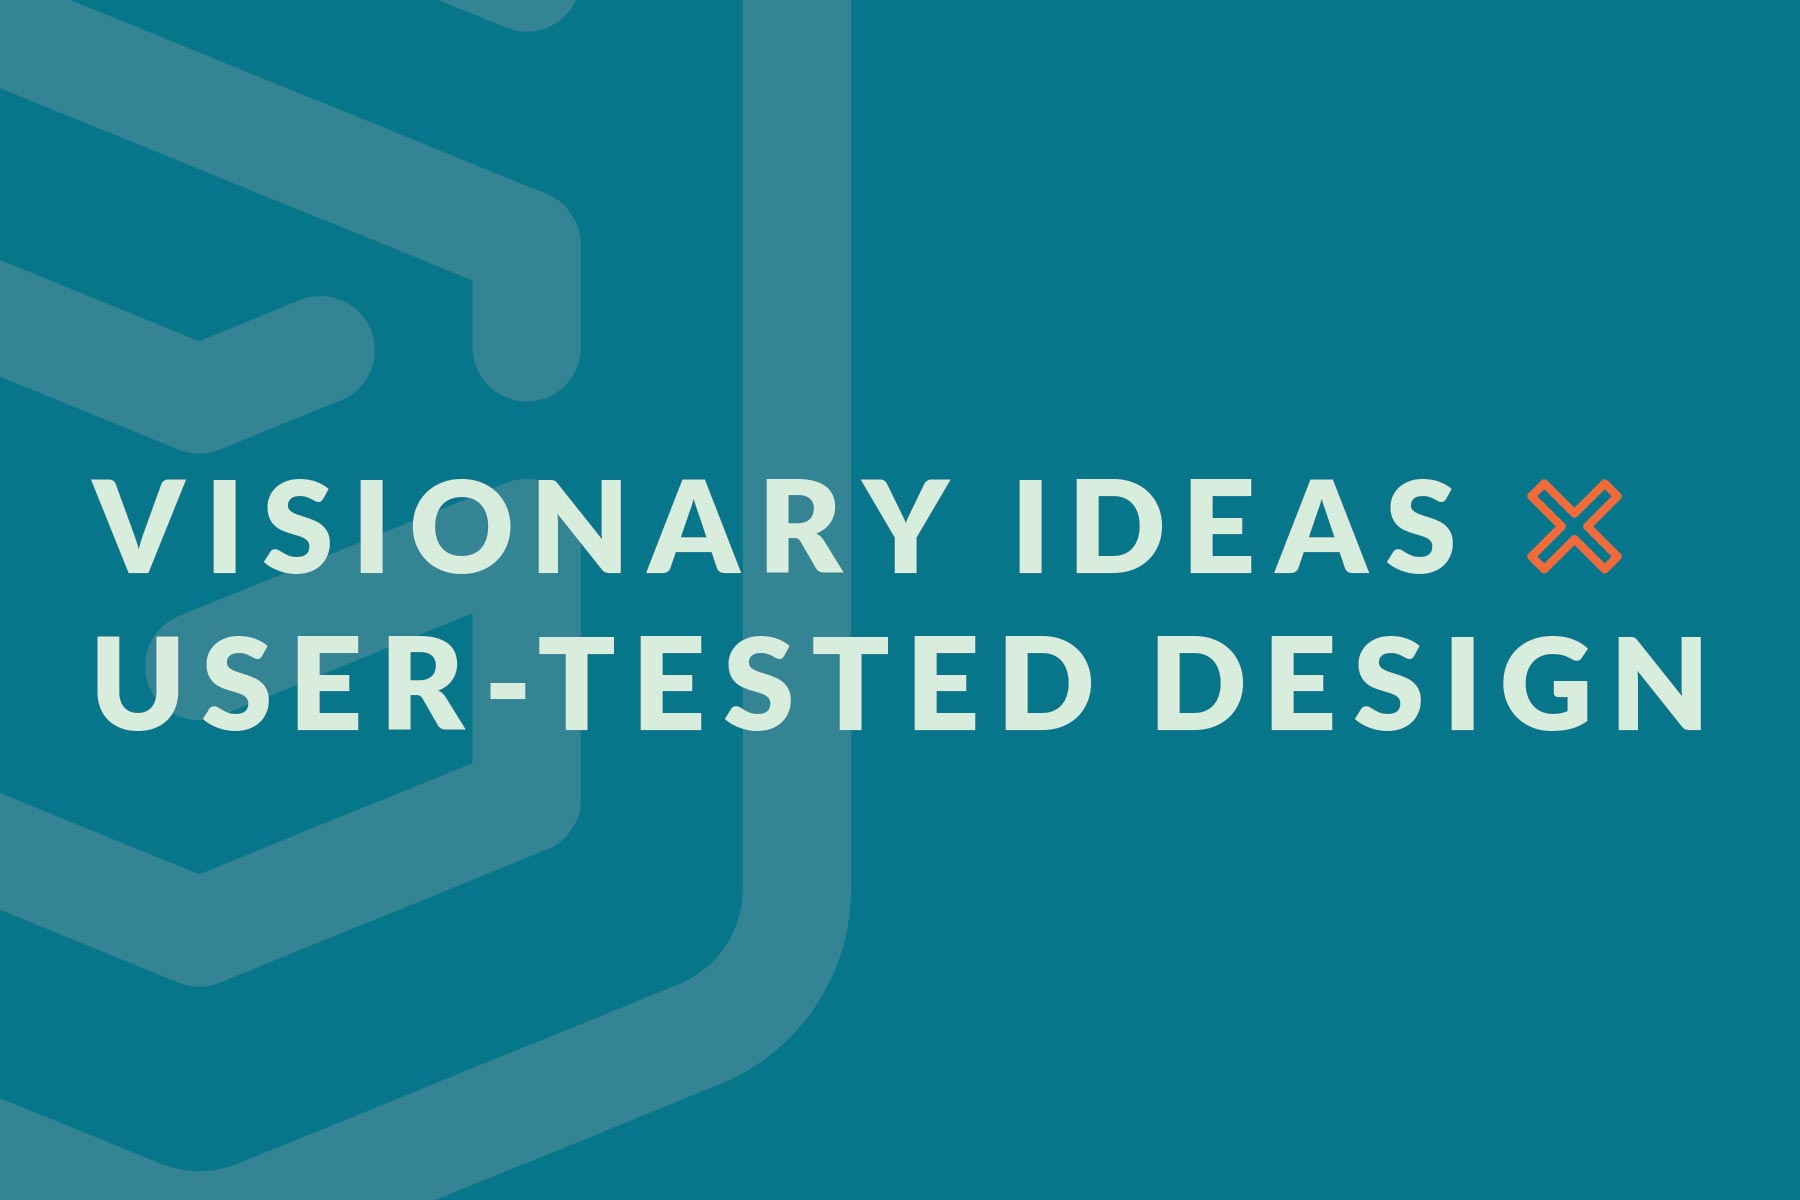 Visionary ideas x user-tested design